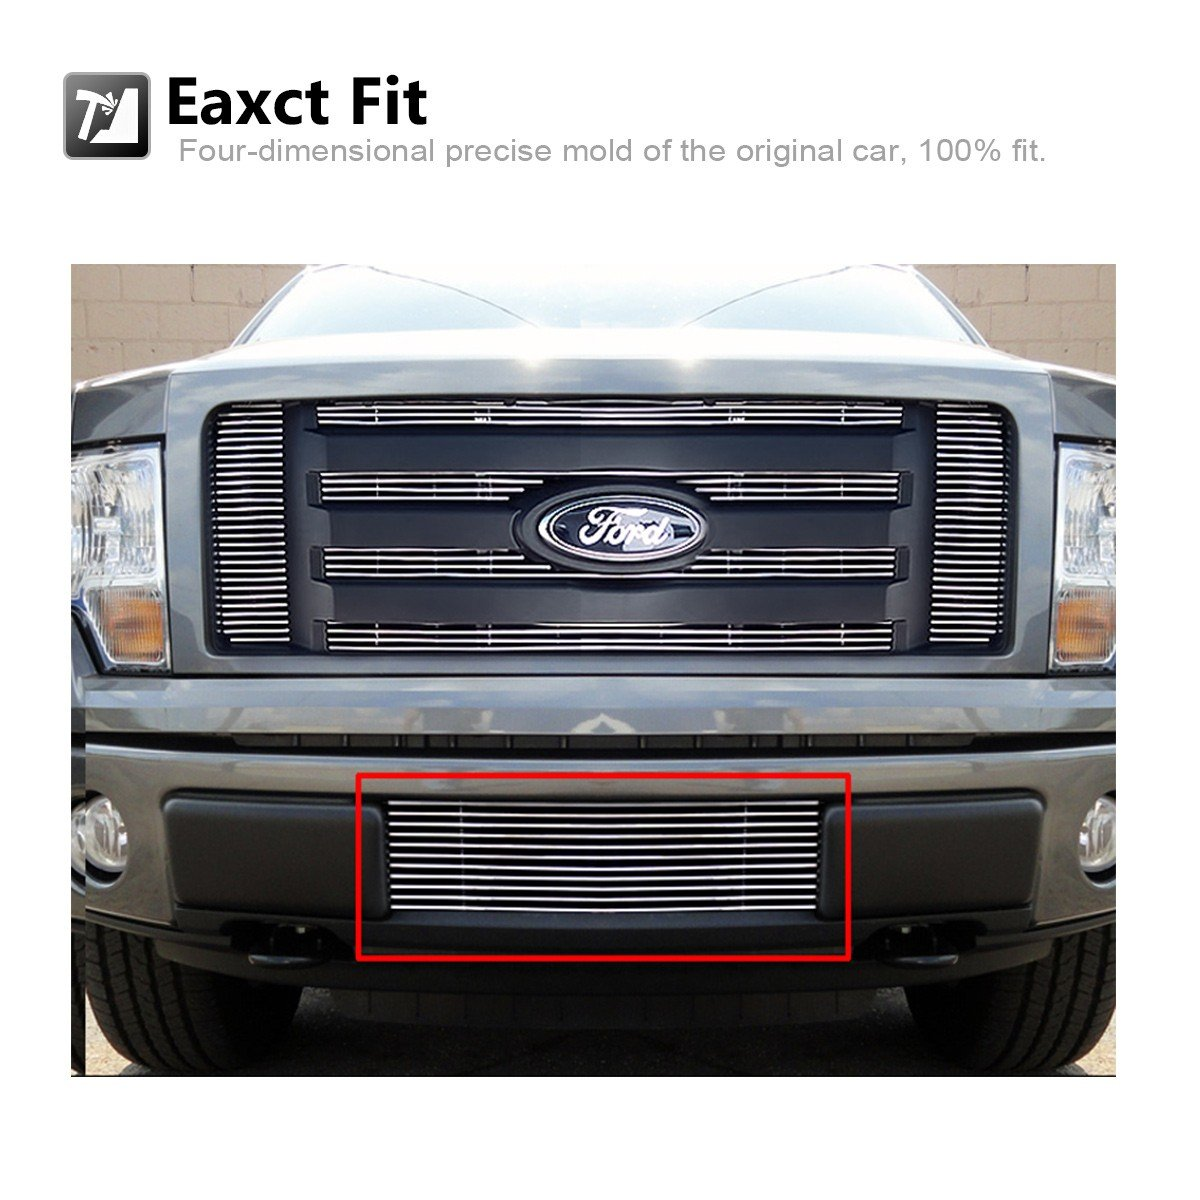 AUTEX F66789A Aluminum Polished Lower Bumper Billet Grille Insert Compatible With Ford F150 Trucks 2009 2010 2011 2012 2013 2014 Grill